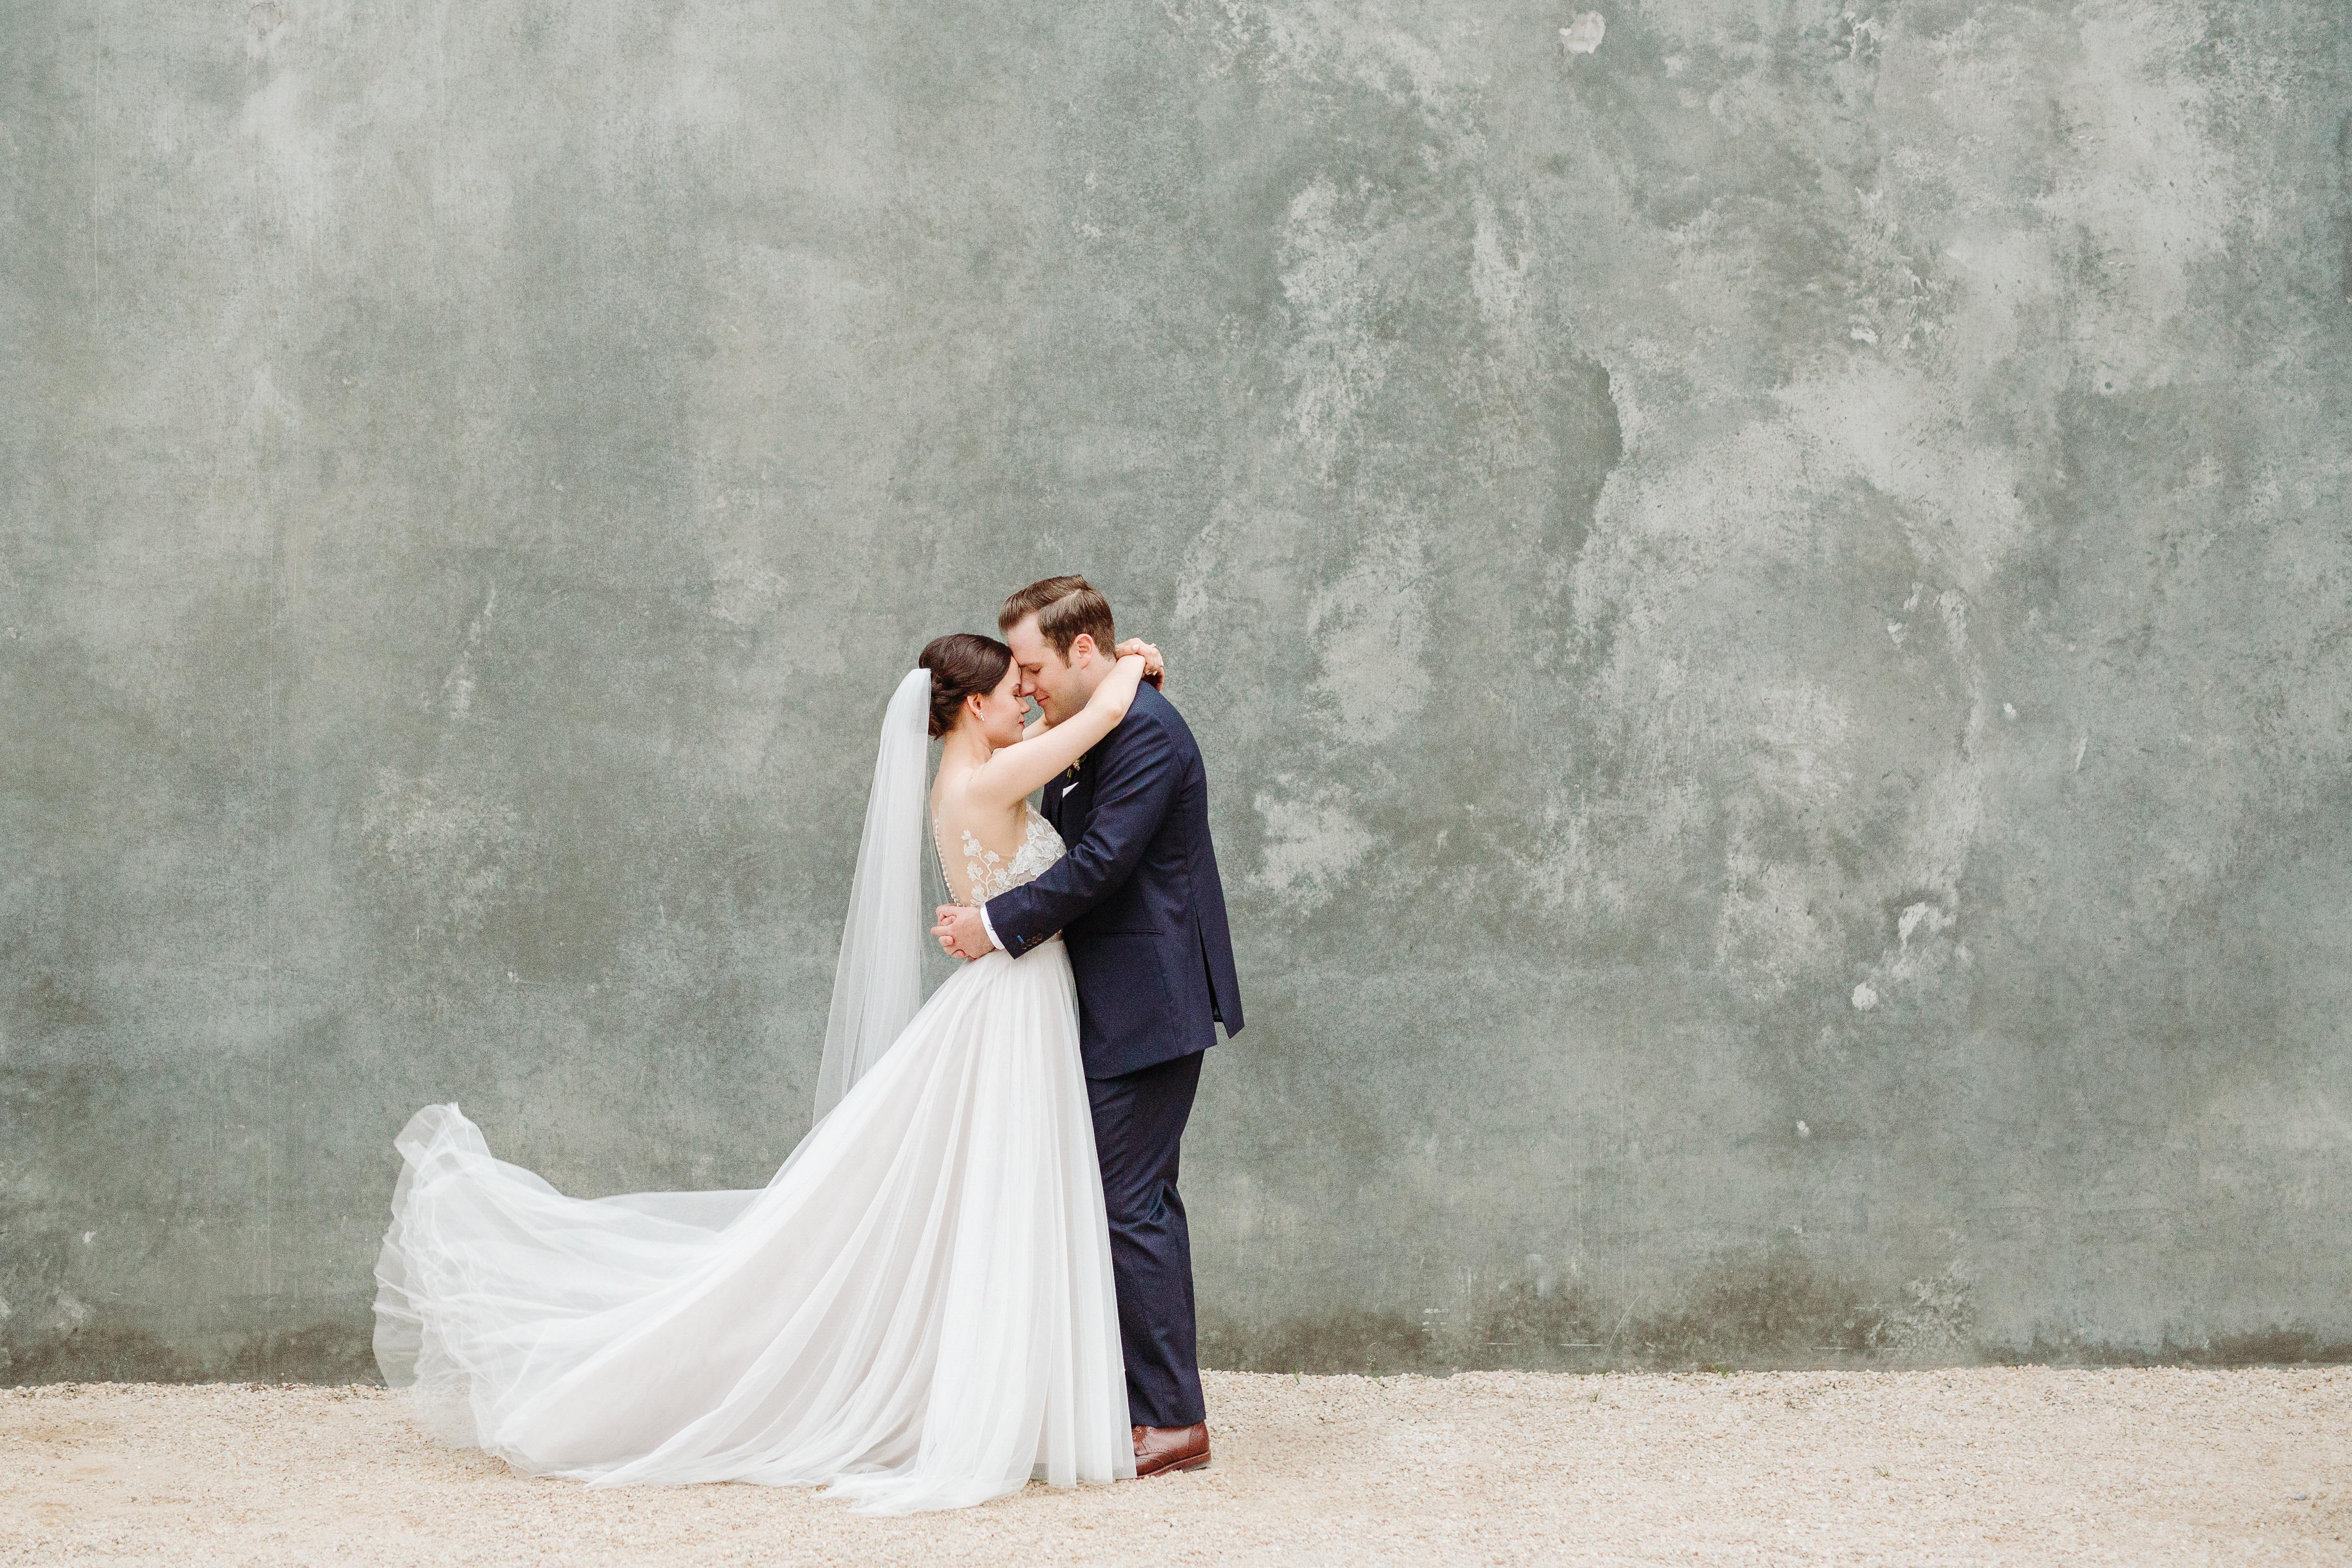 Bride and groom portrait against cement wall - photo by Cameron Zegers Photography